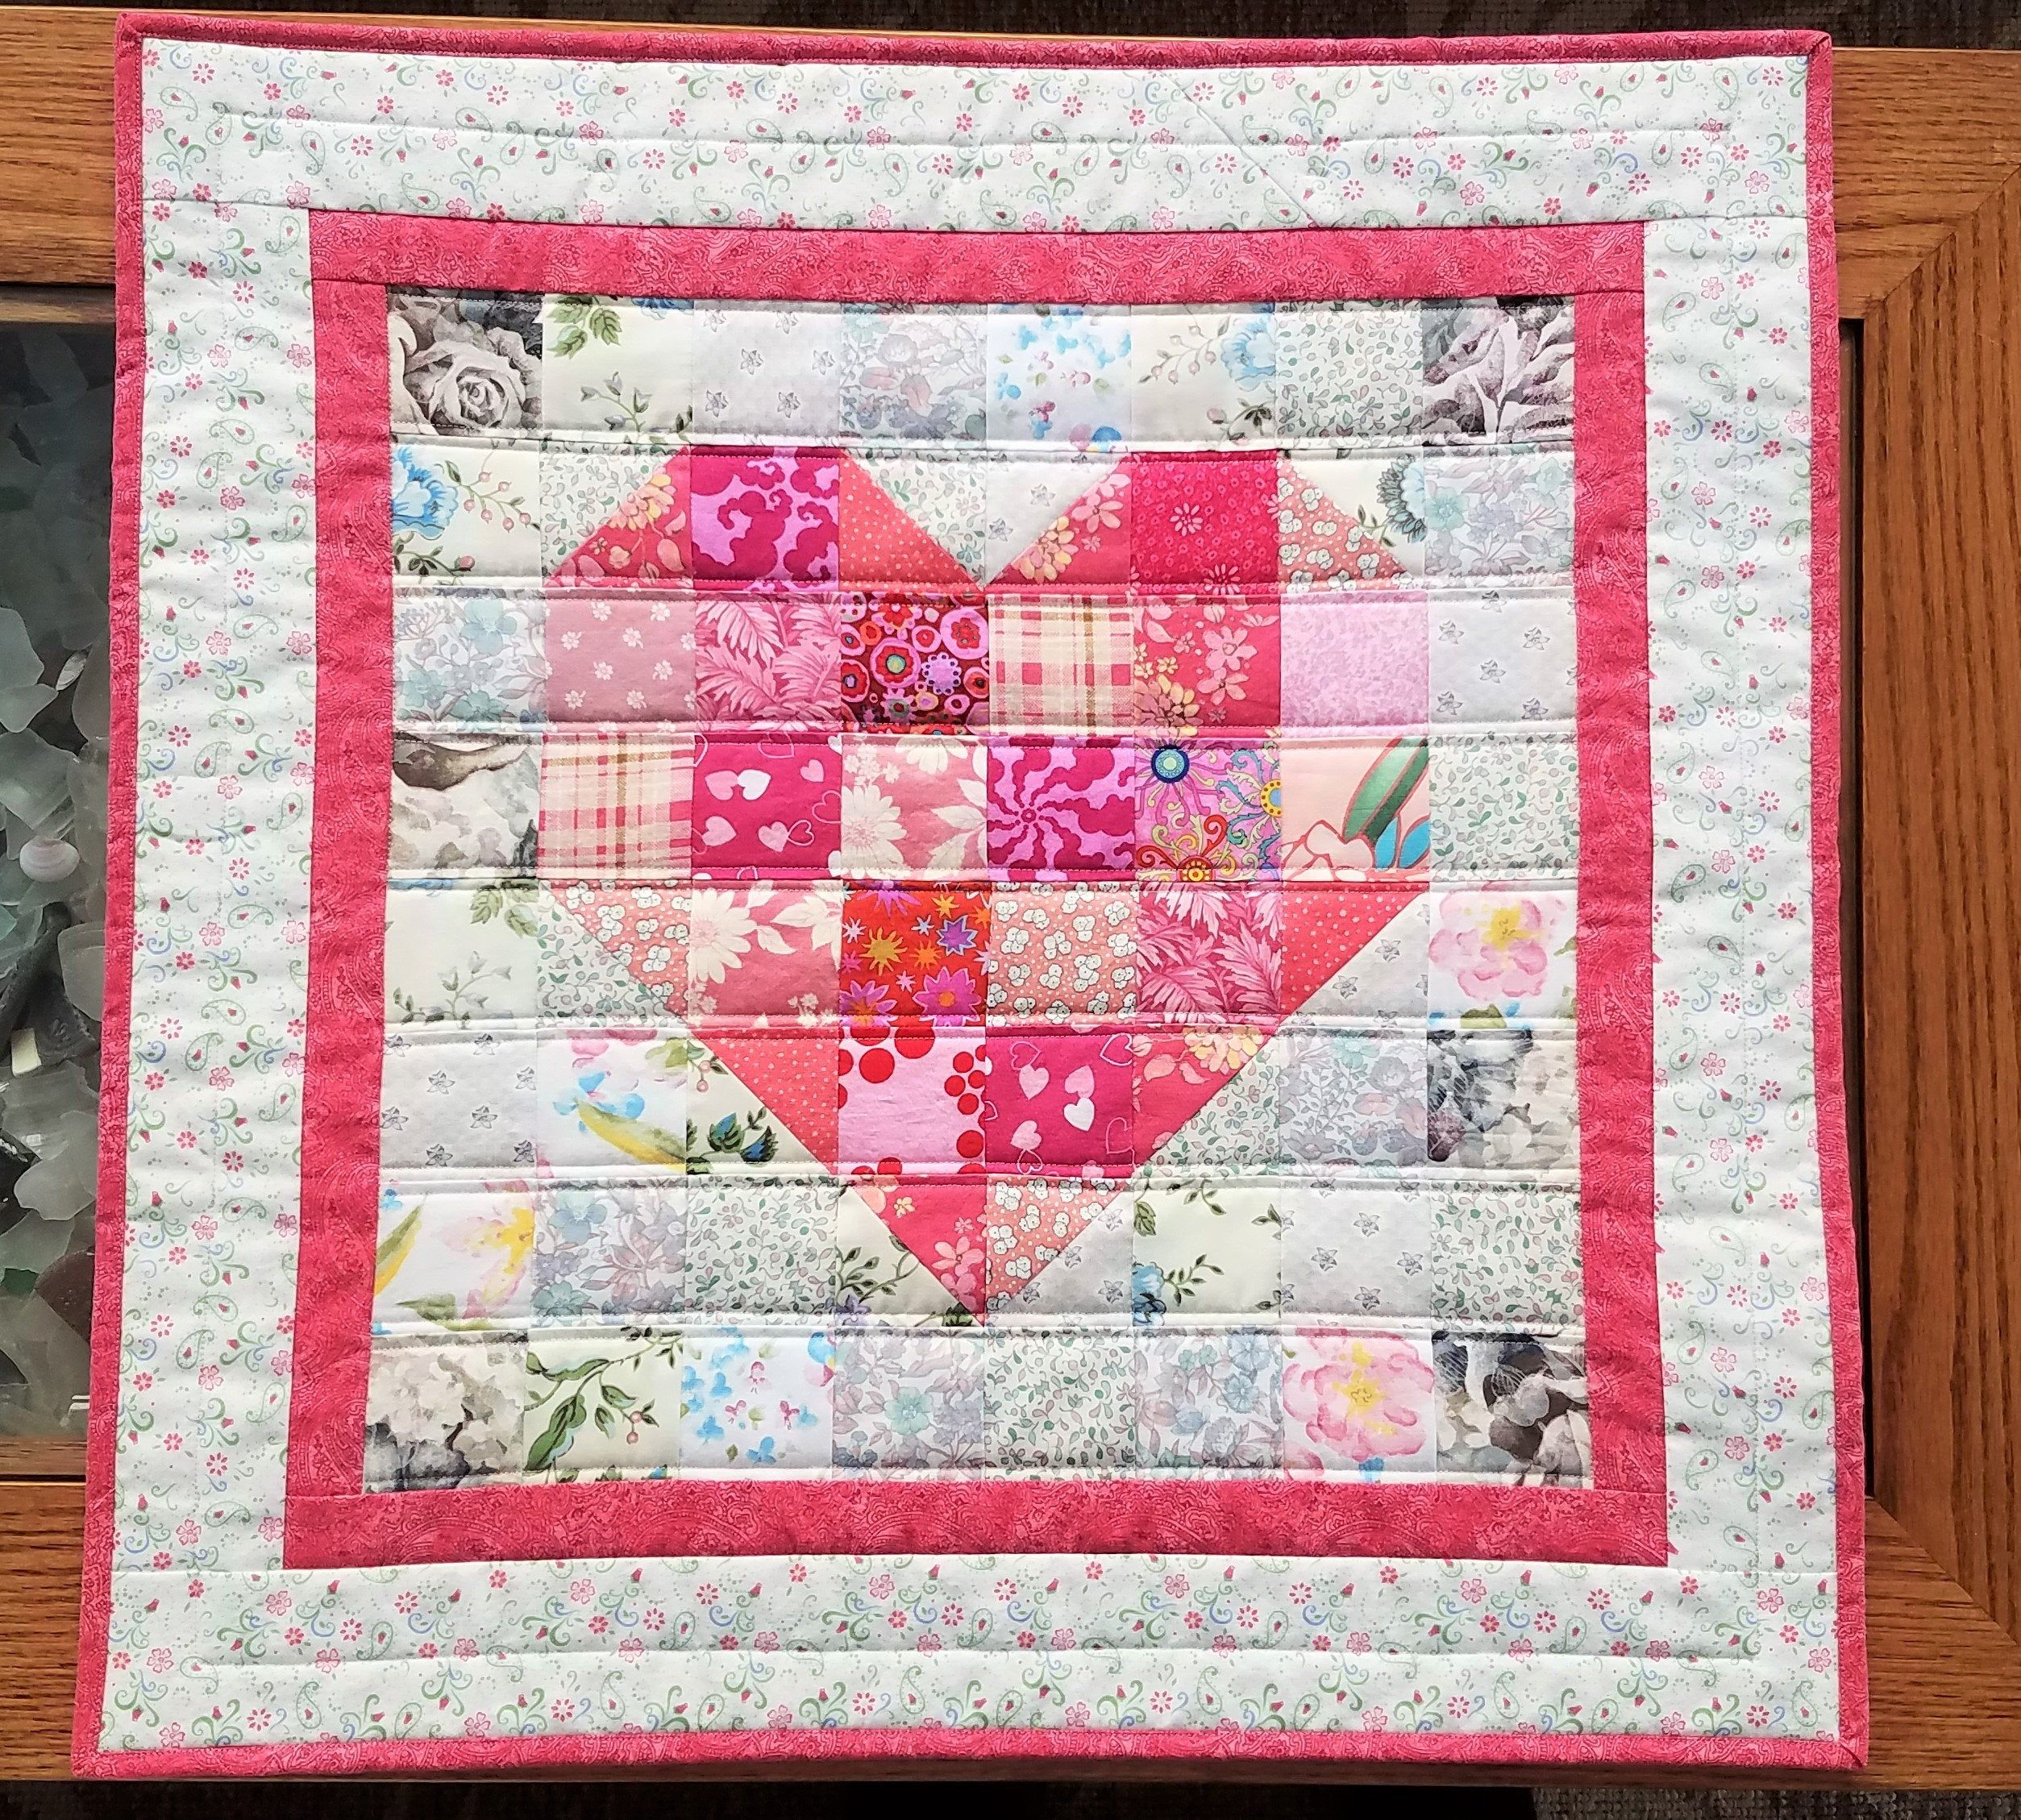 Heart Quilted Wall Hanging Valentine S Day Table Topper Pink Heart Wall Hanging Door Decoration In 2020 Rainbow Quilt Quilted Wall Hangings Heart Quilt